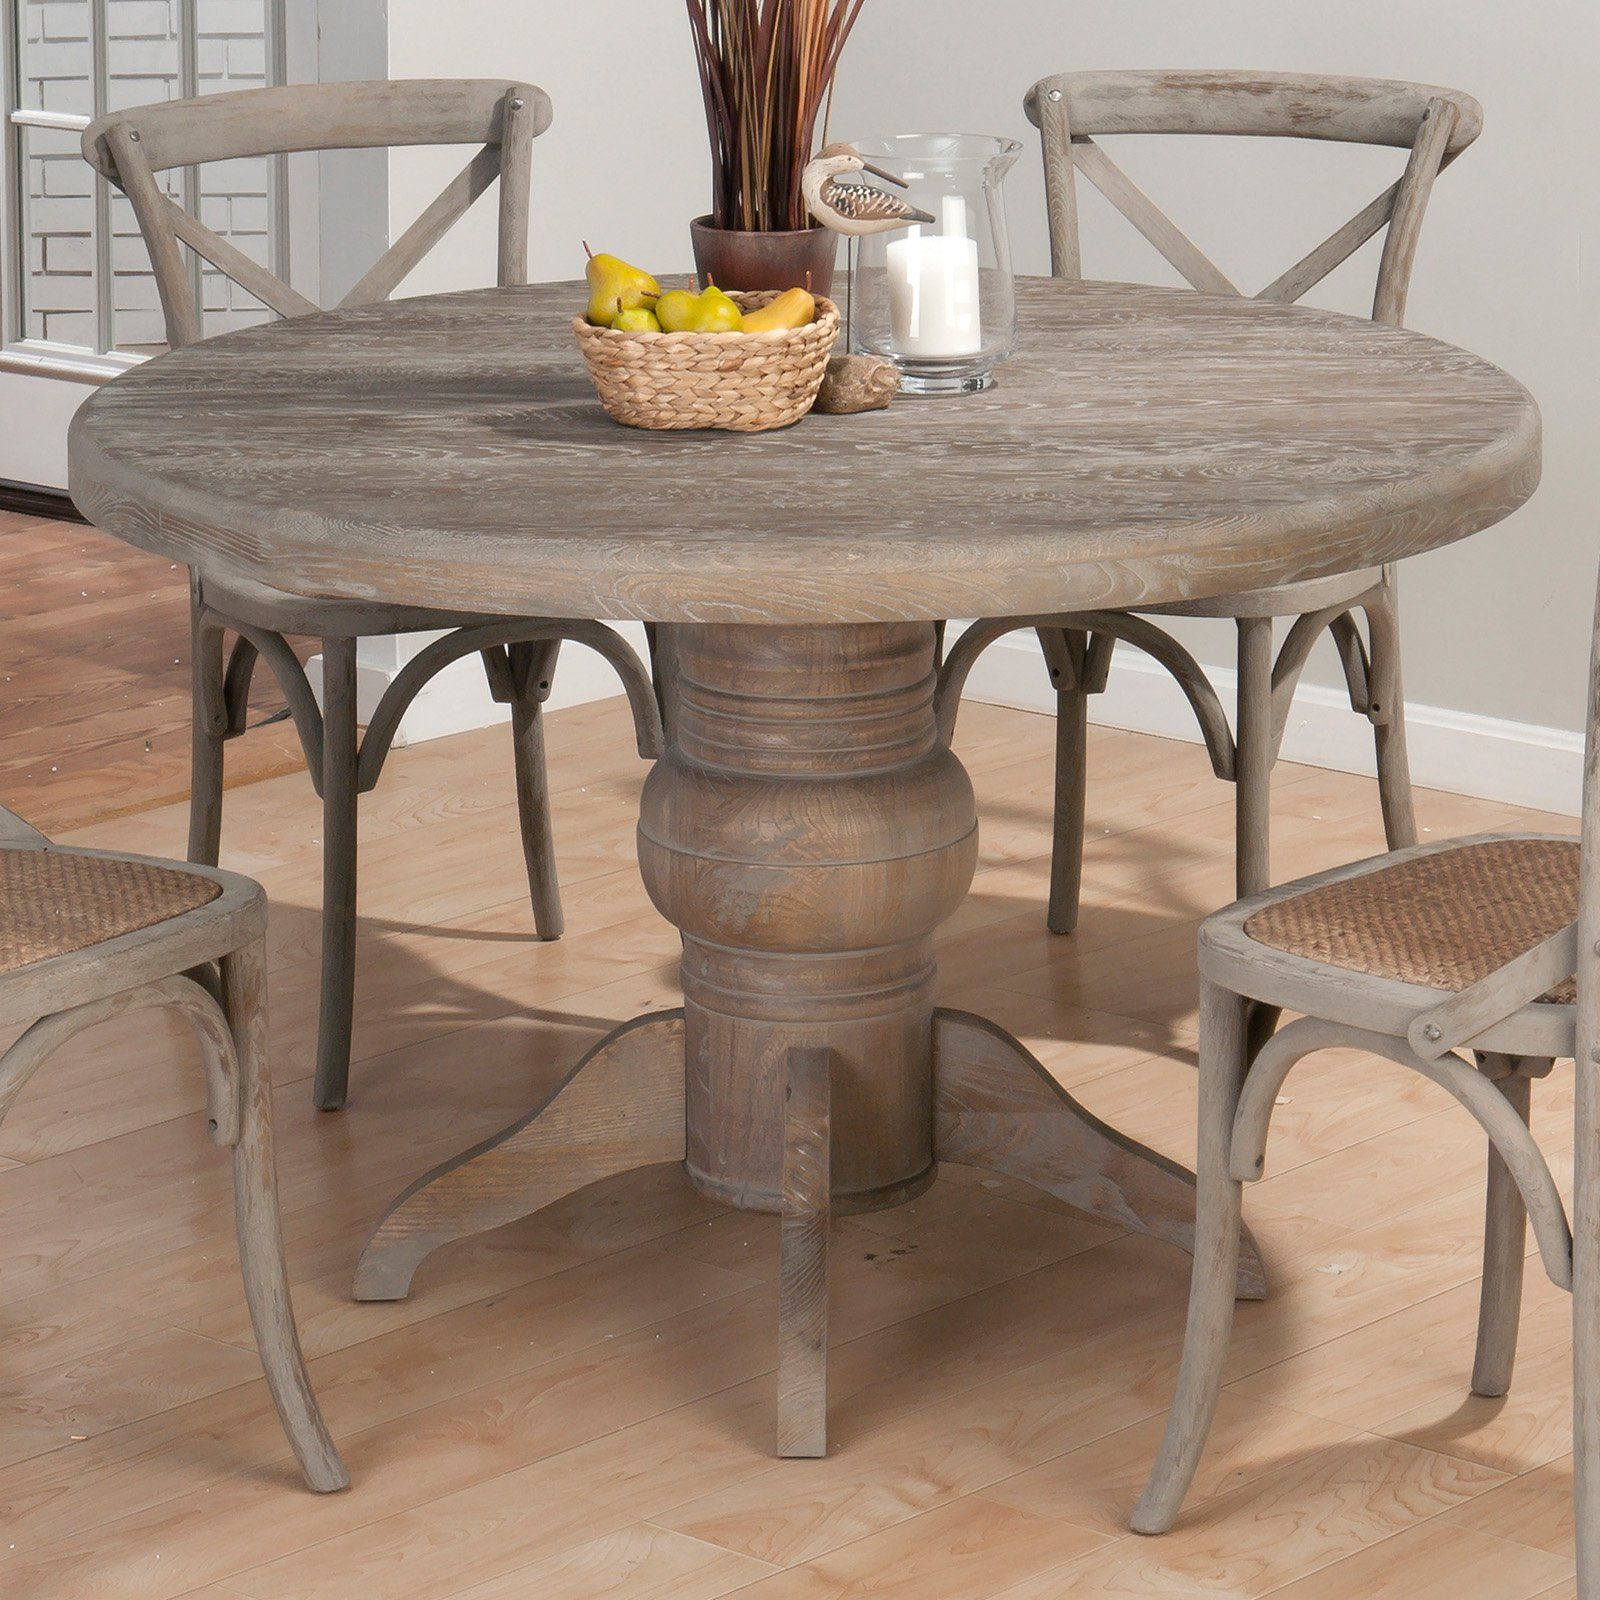 Jofran Booth Bay Round Pedestal Dining Table With A Distressed